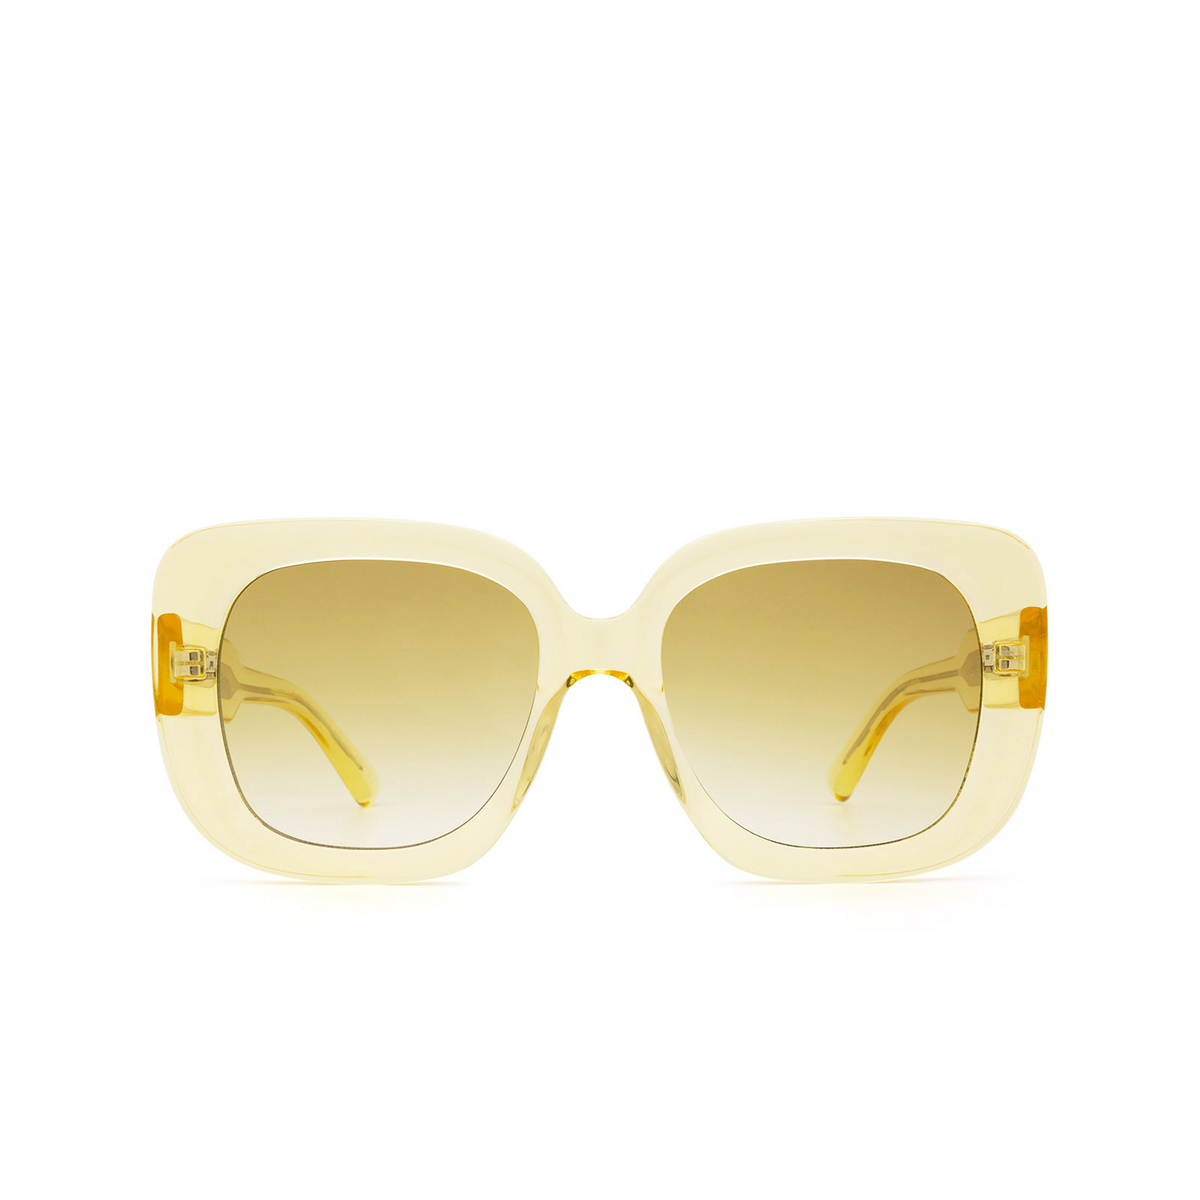 Chimi® Square Sunglasses: 10 color Yellow - front view.